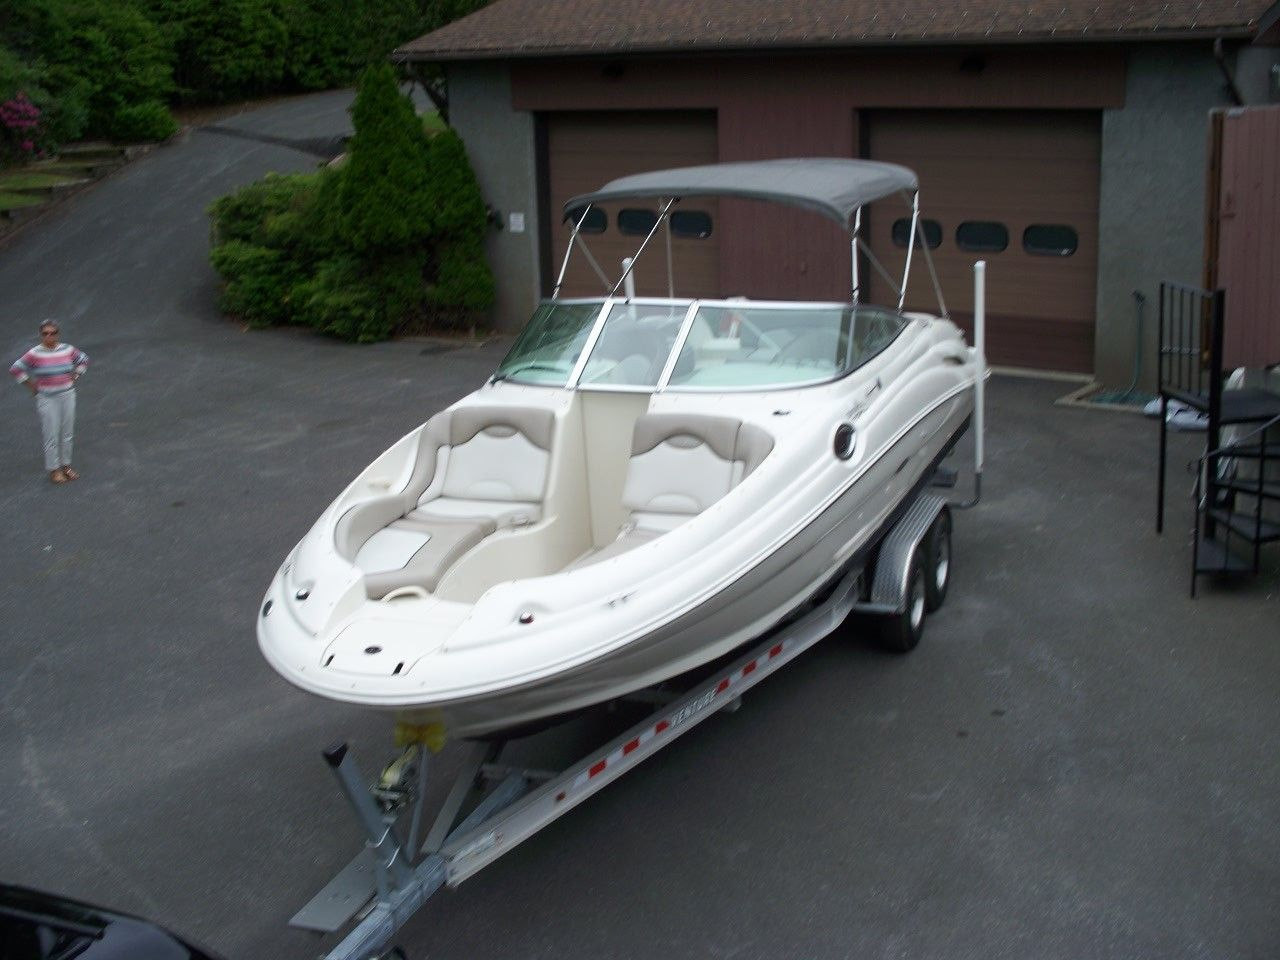 Sea Ray Sundeck 270 with Trailer and 496 Mercruiser | eBay